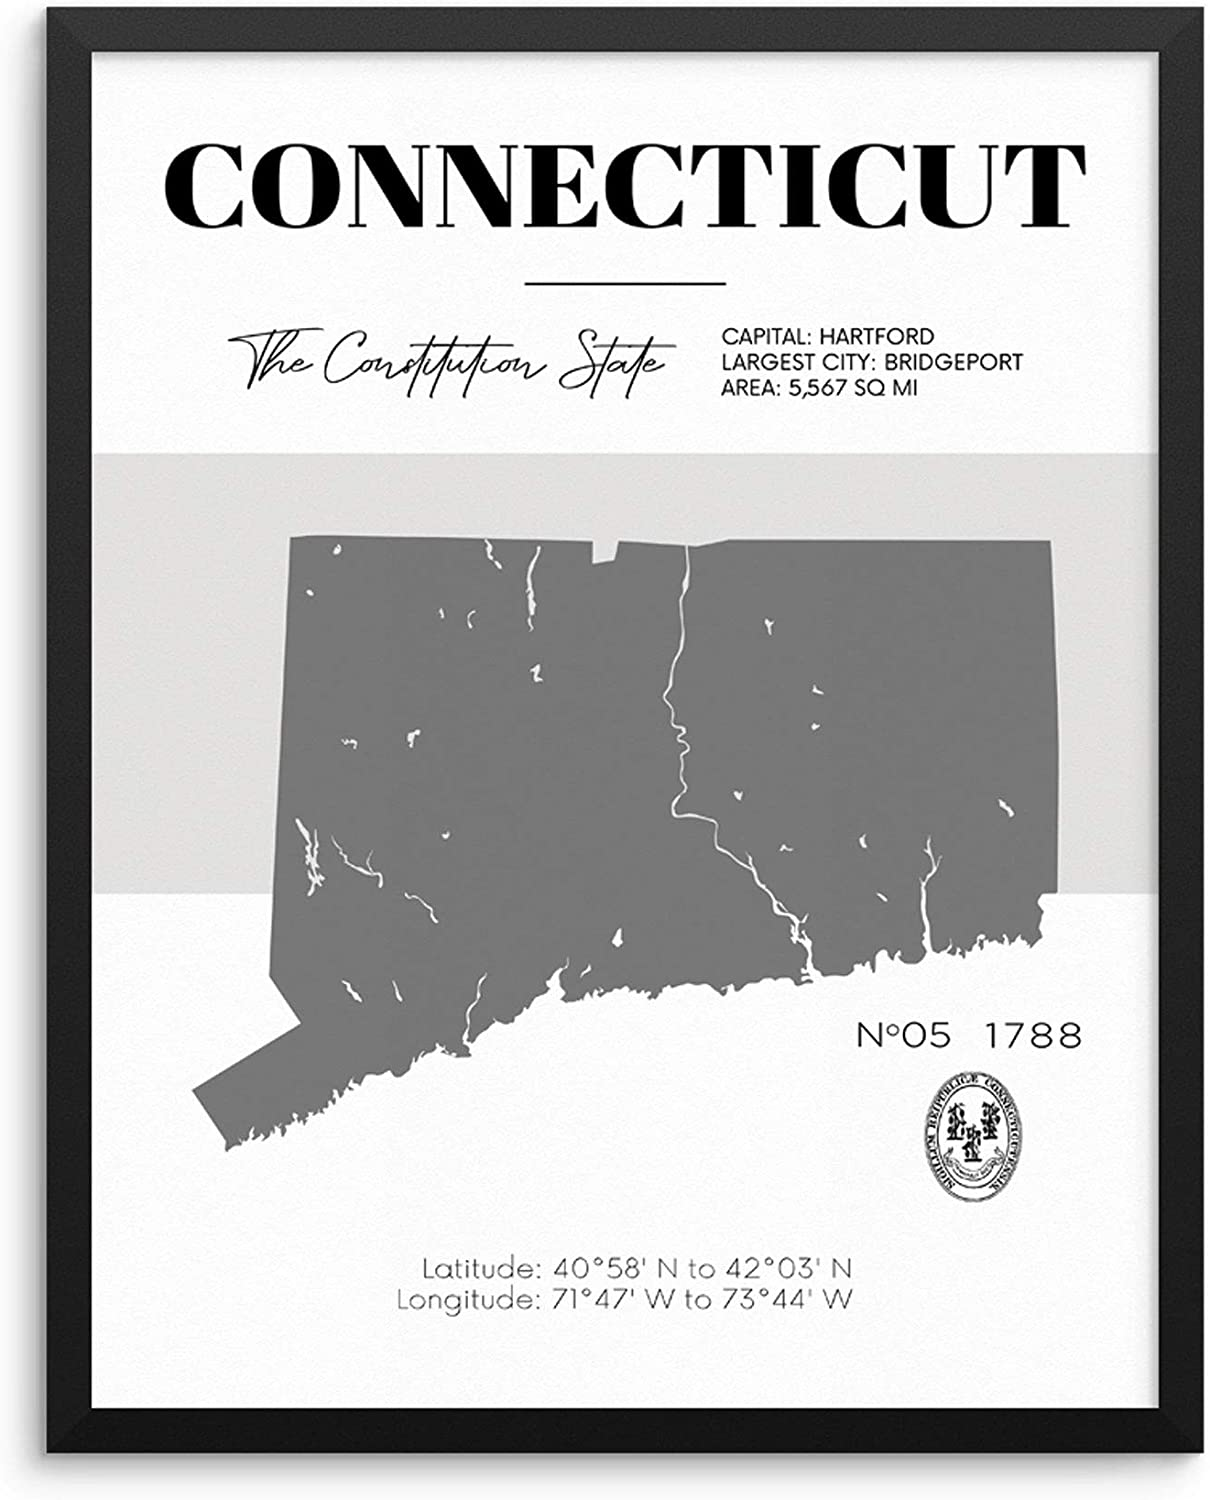 Connecticut State Map Poster With Demographics Minimalist Home Decor Travel  Art Print 20x20 UNFRAMED Trendy Artwork for Bedroom Living Room Entryway ...